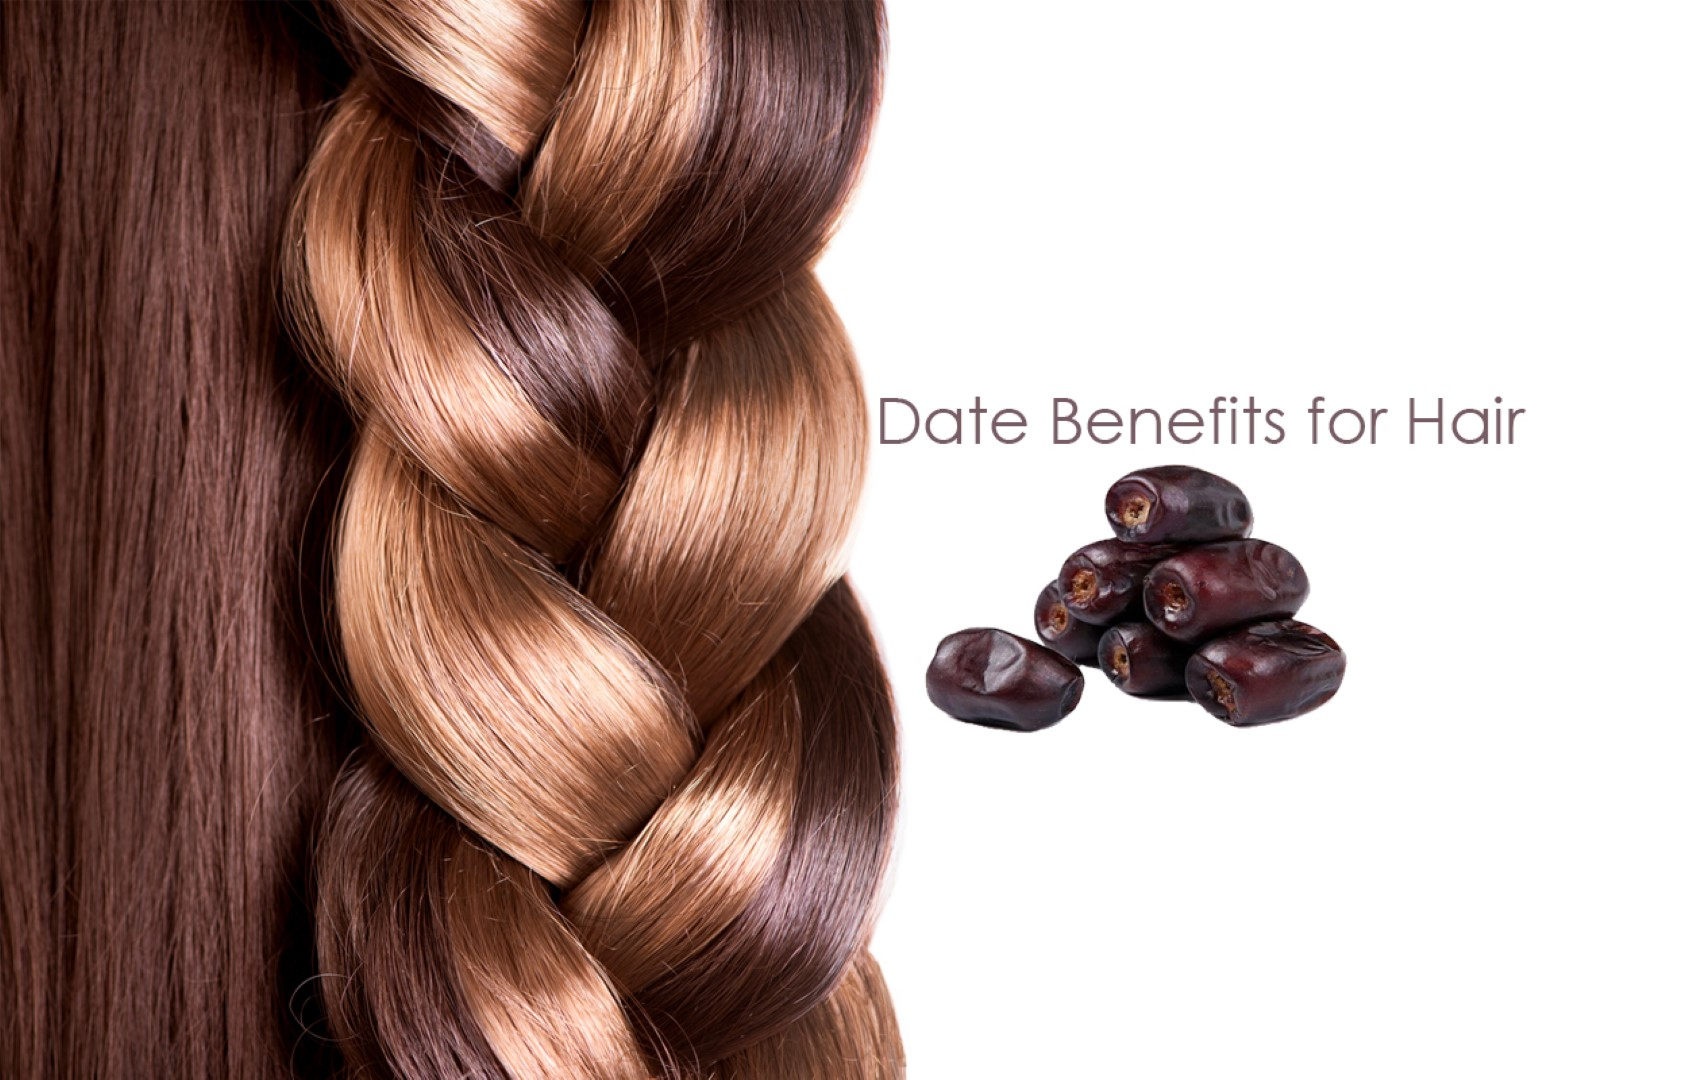 Date Benefits for Hair